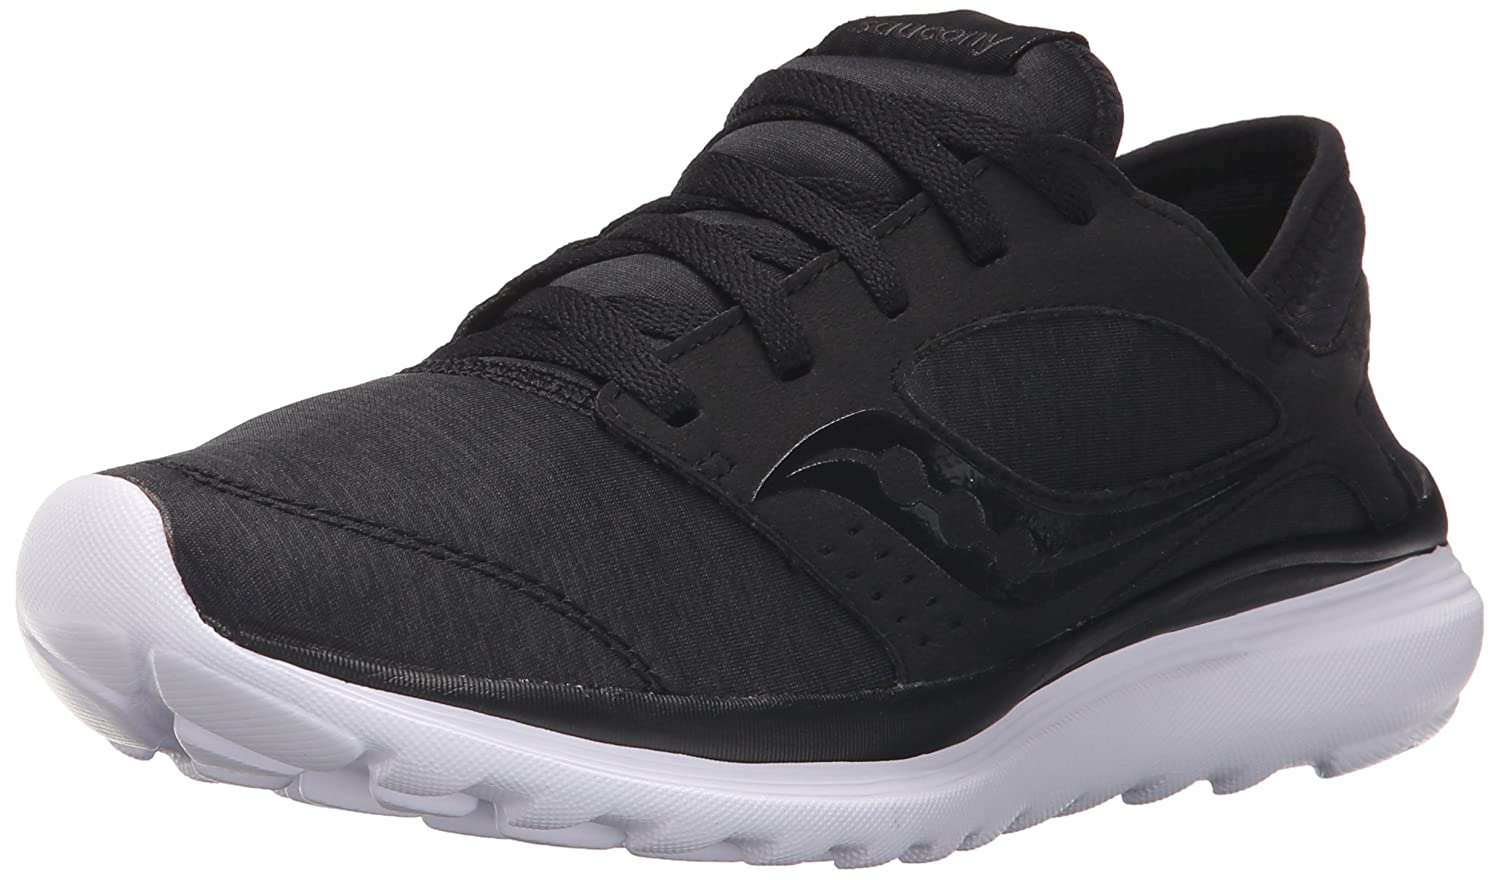 Saucony Women's Kineta Relay Running Shoe B018FC4NW0 6.5 B(M) US|Black/Black